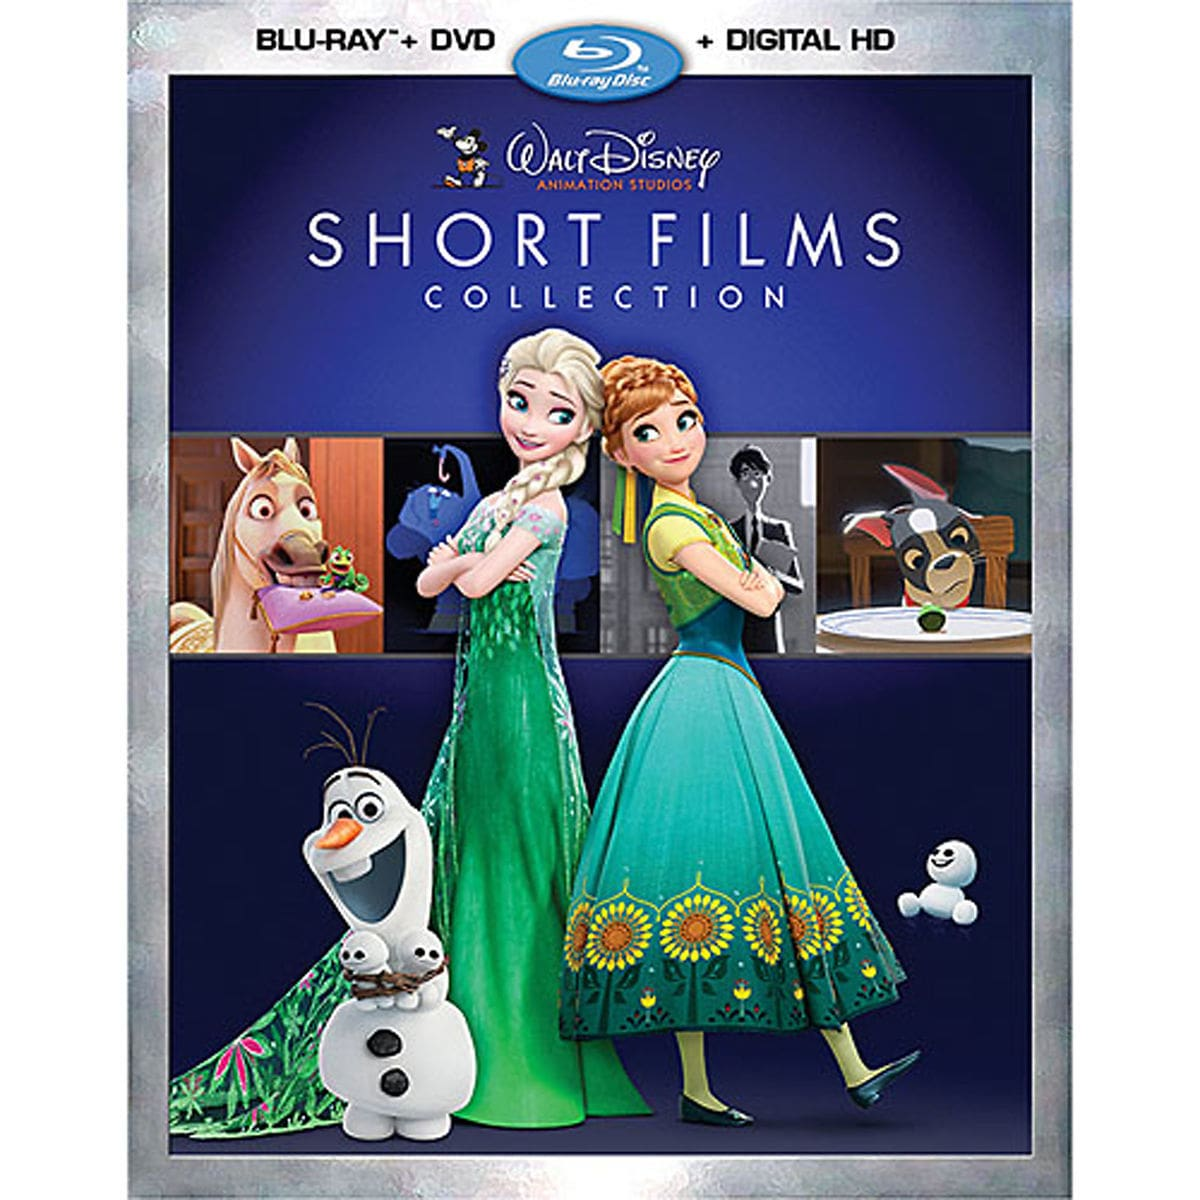 Product Image of Walt Disney Animation Studios Short Films Collection  Blu-ray Combo Pack   64504d81a3b